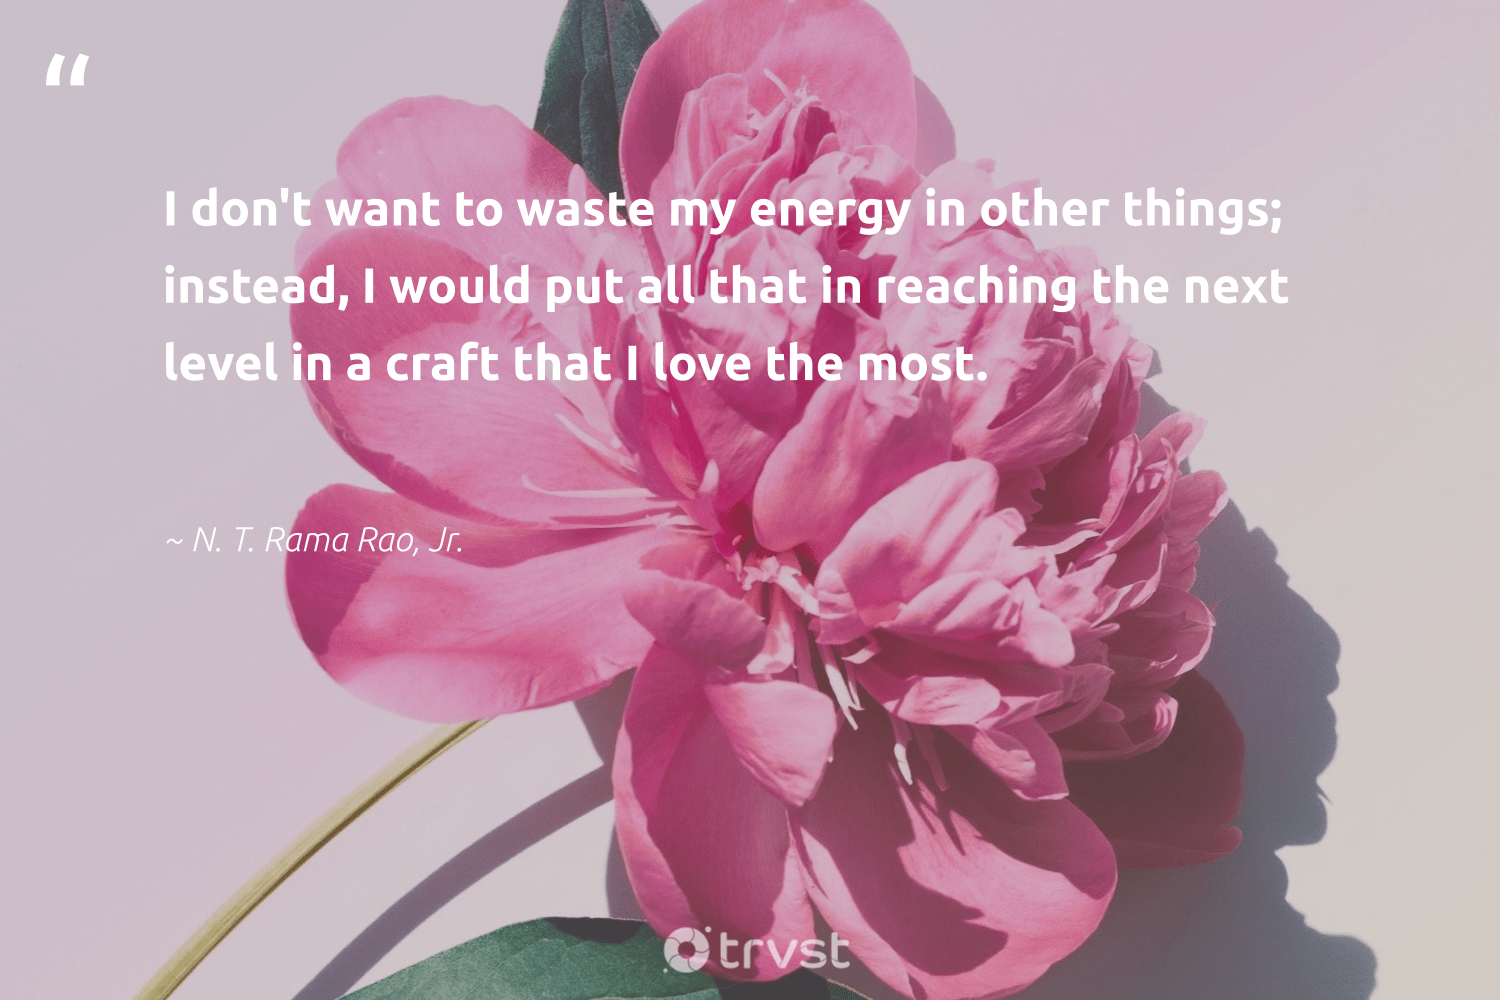 """I don't want to waste my energy in other things; instead, I would put all that in reaching the next level in a craft that I love the most.""  - N. T. Rama Rao, Jr. #trvst #quotes #love #waste #energy #ethicalbusiness #planetearthfirst #socialchange #beinspired #betterplanet #collectiveaction #dogood"